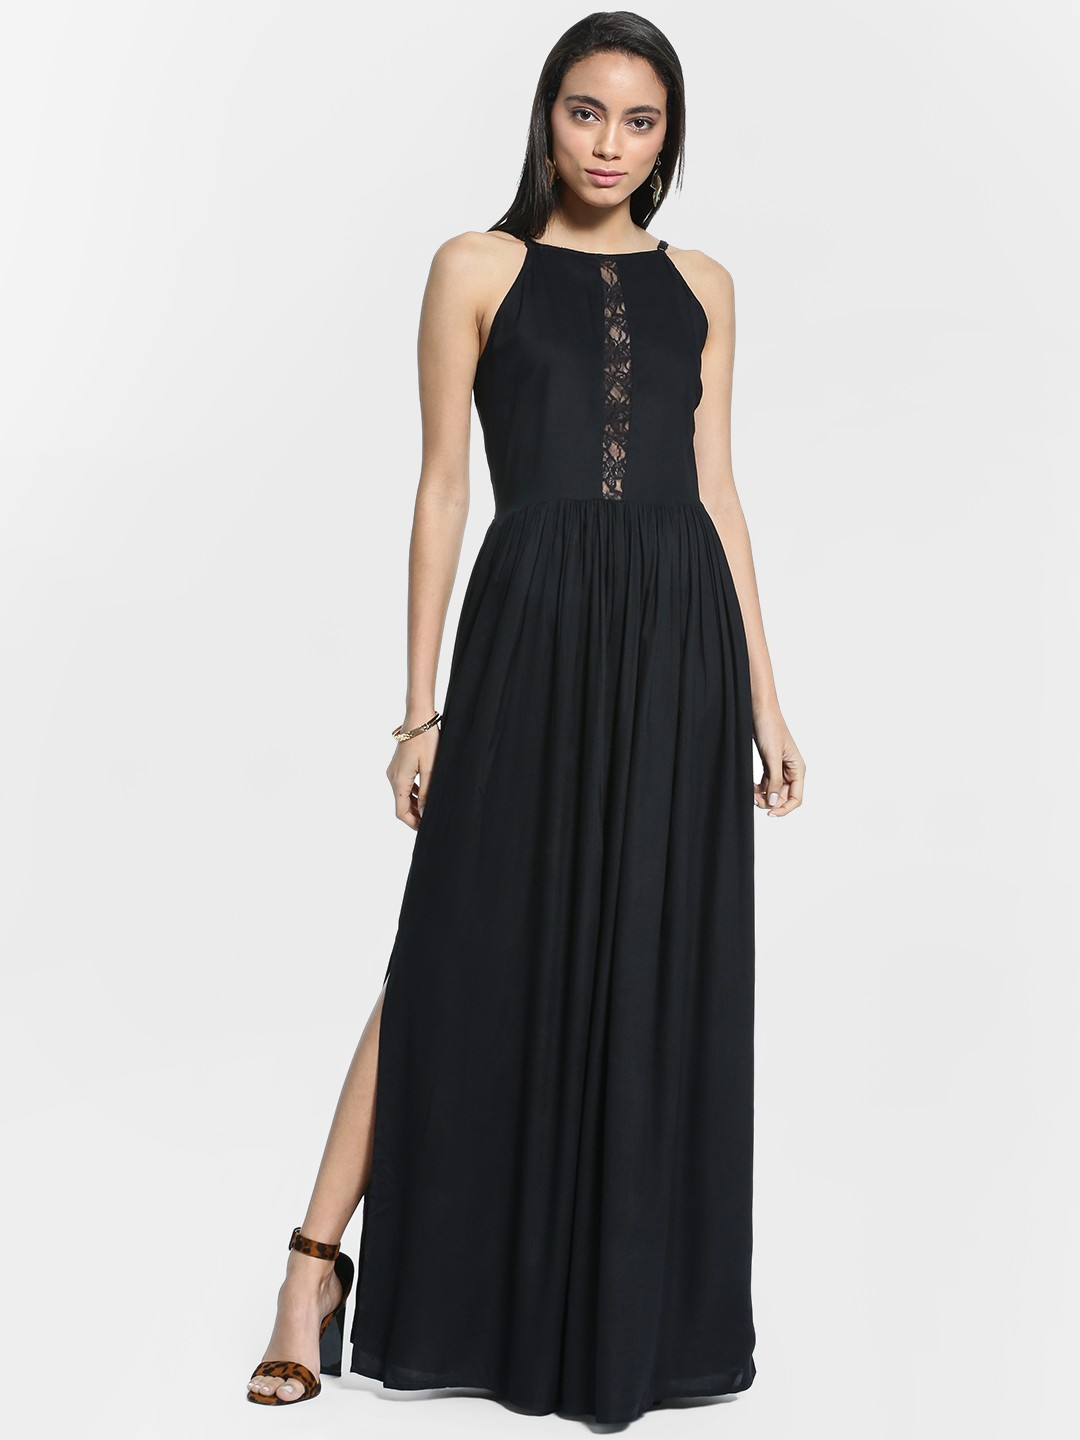 Ri-Dress Black Lace Insert Strappy Maxi Dress 1